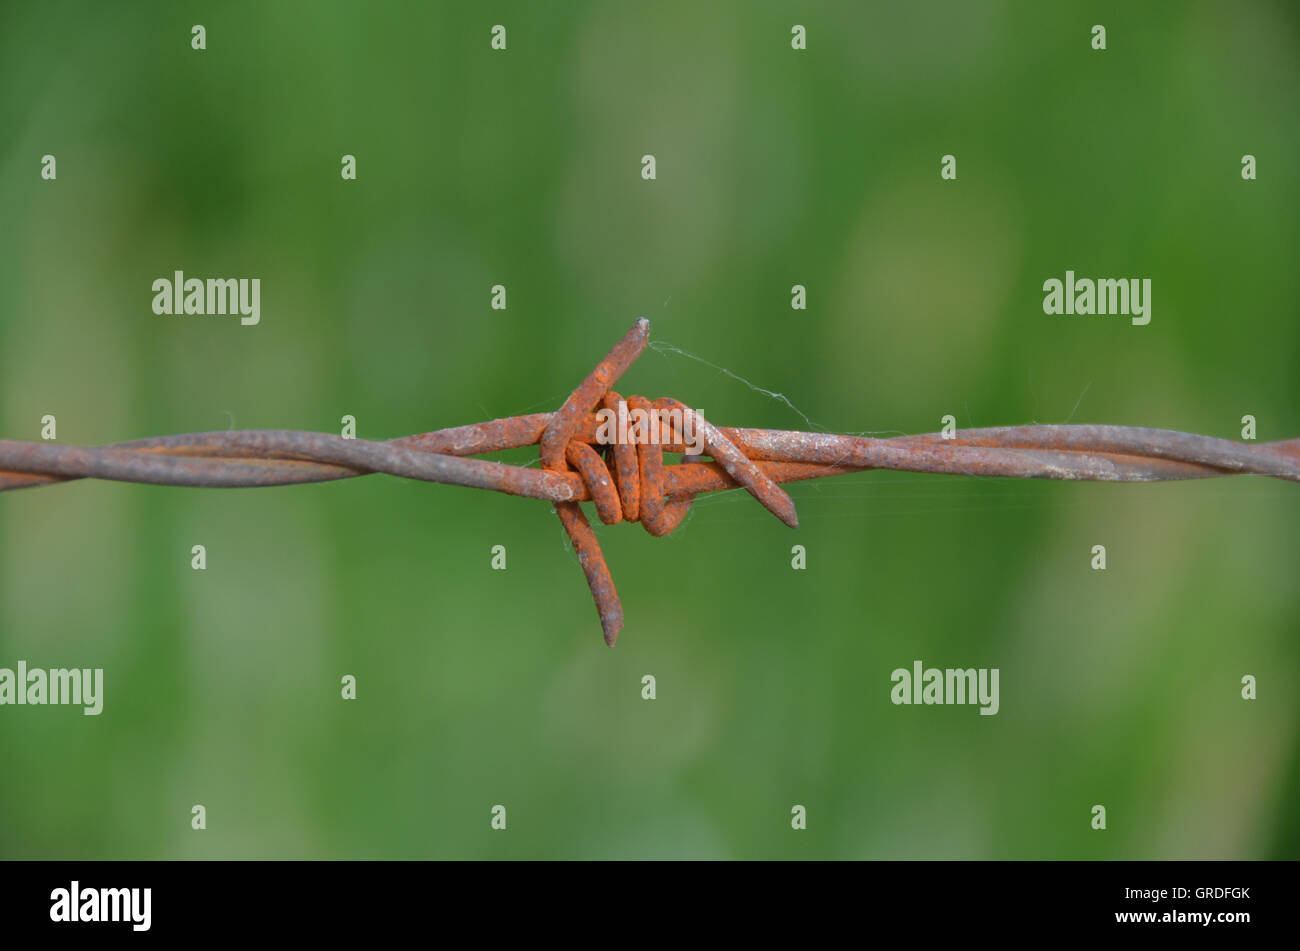 Barbed Wire Fence In Front Of Green Background - Stock Image